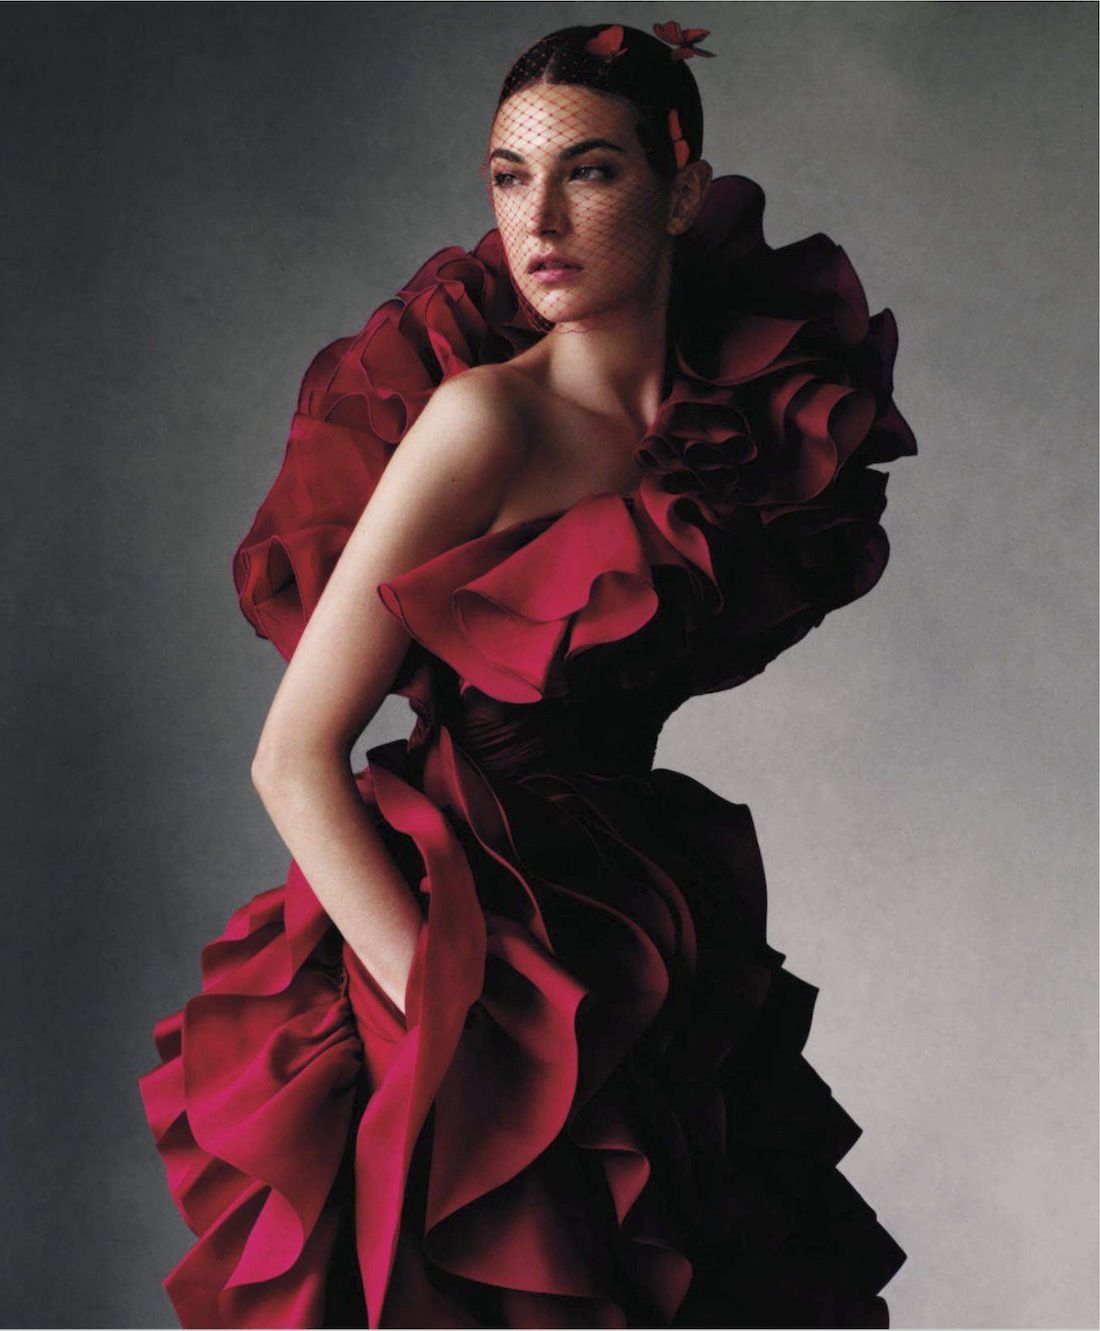 Giambattista Valli Fall 2012 on Jacquelyn Jablonski | photo Victor Demarchelier | Harper's Bazaar Nov 2012